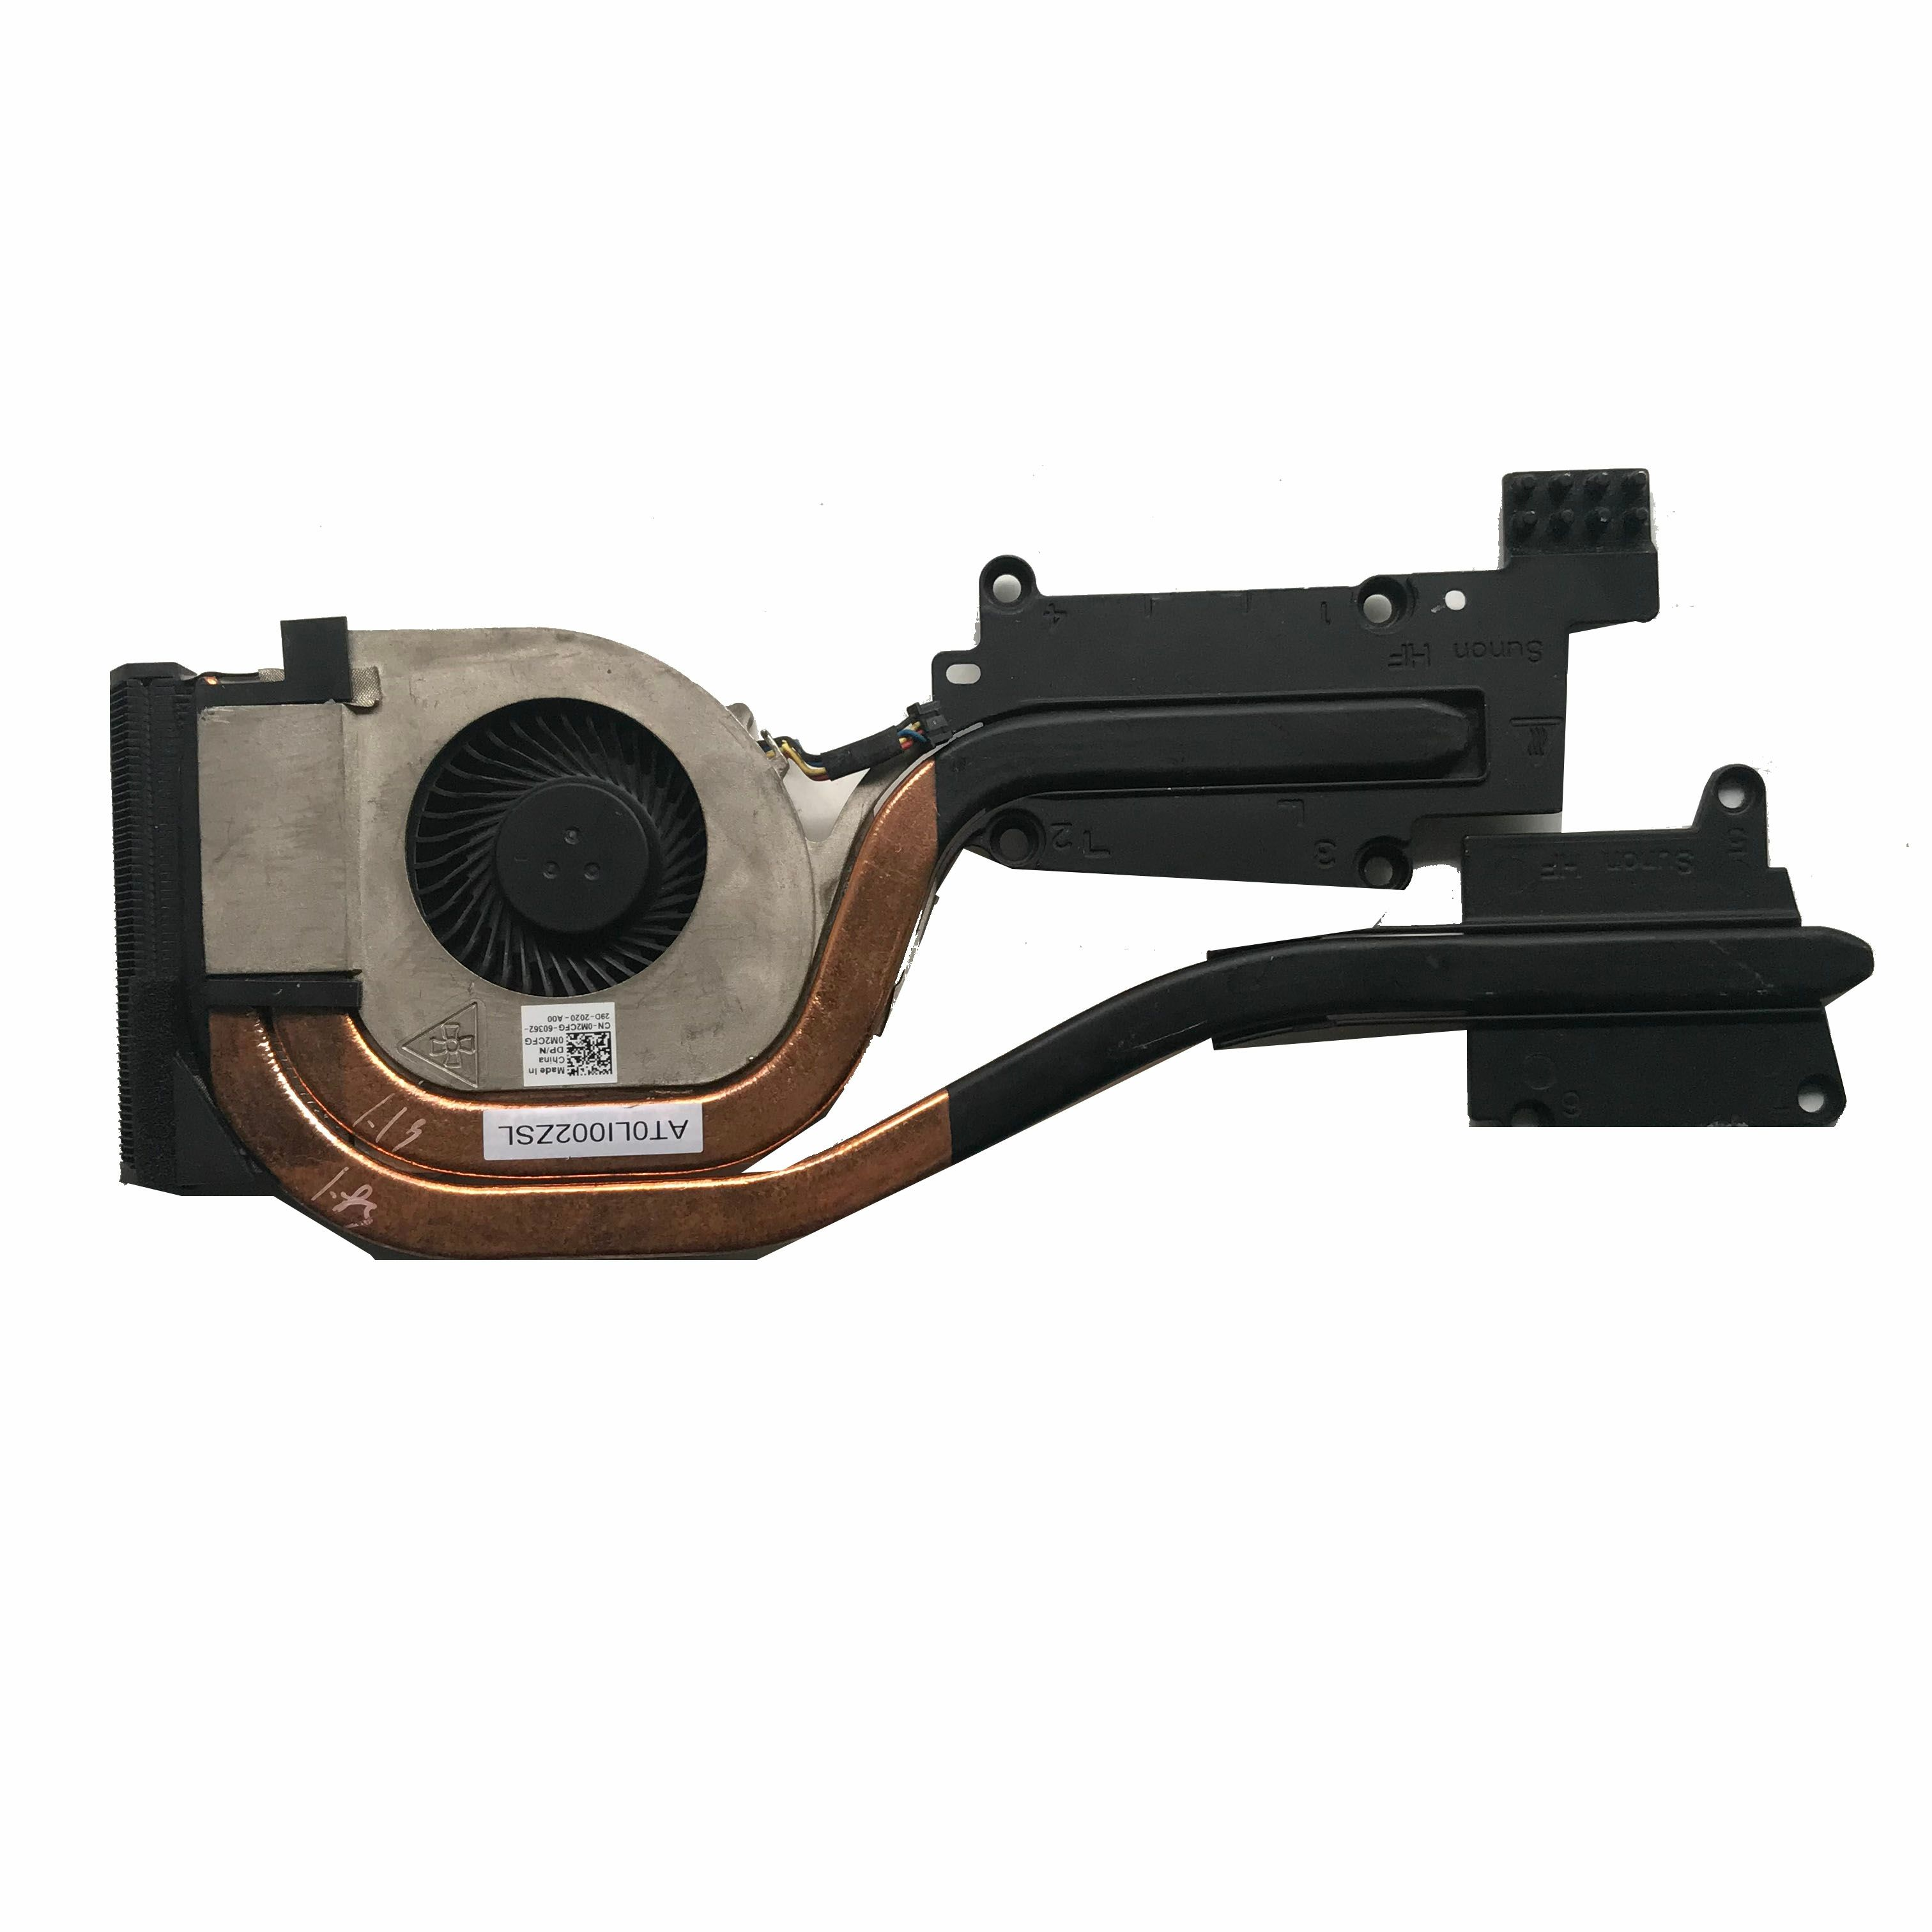 Original For Dell Latitude E6530 Cooling Fan with Heatsink DP//N 0M2CFG  M2CFG